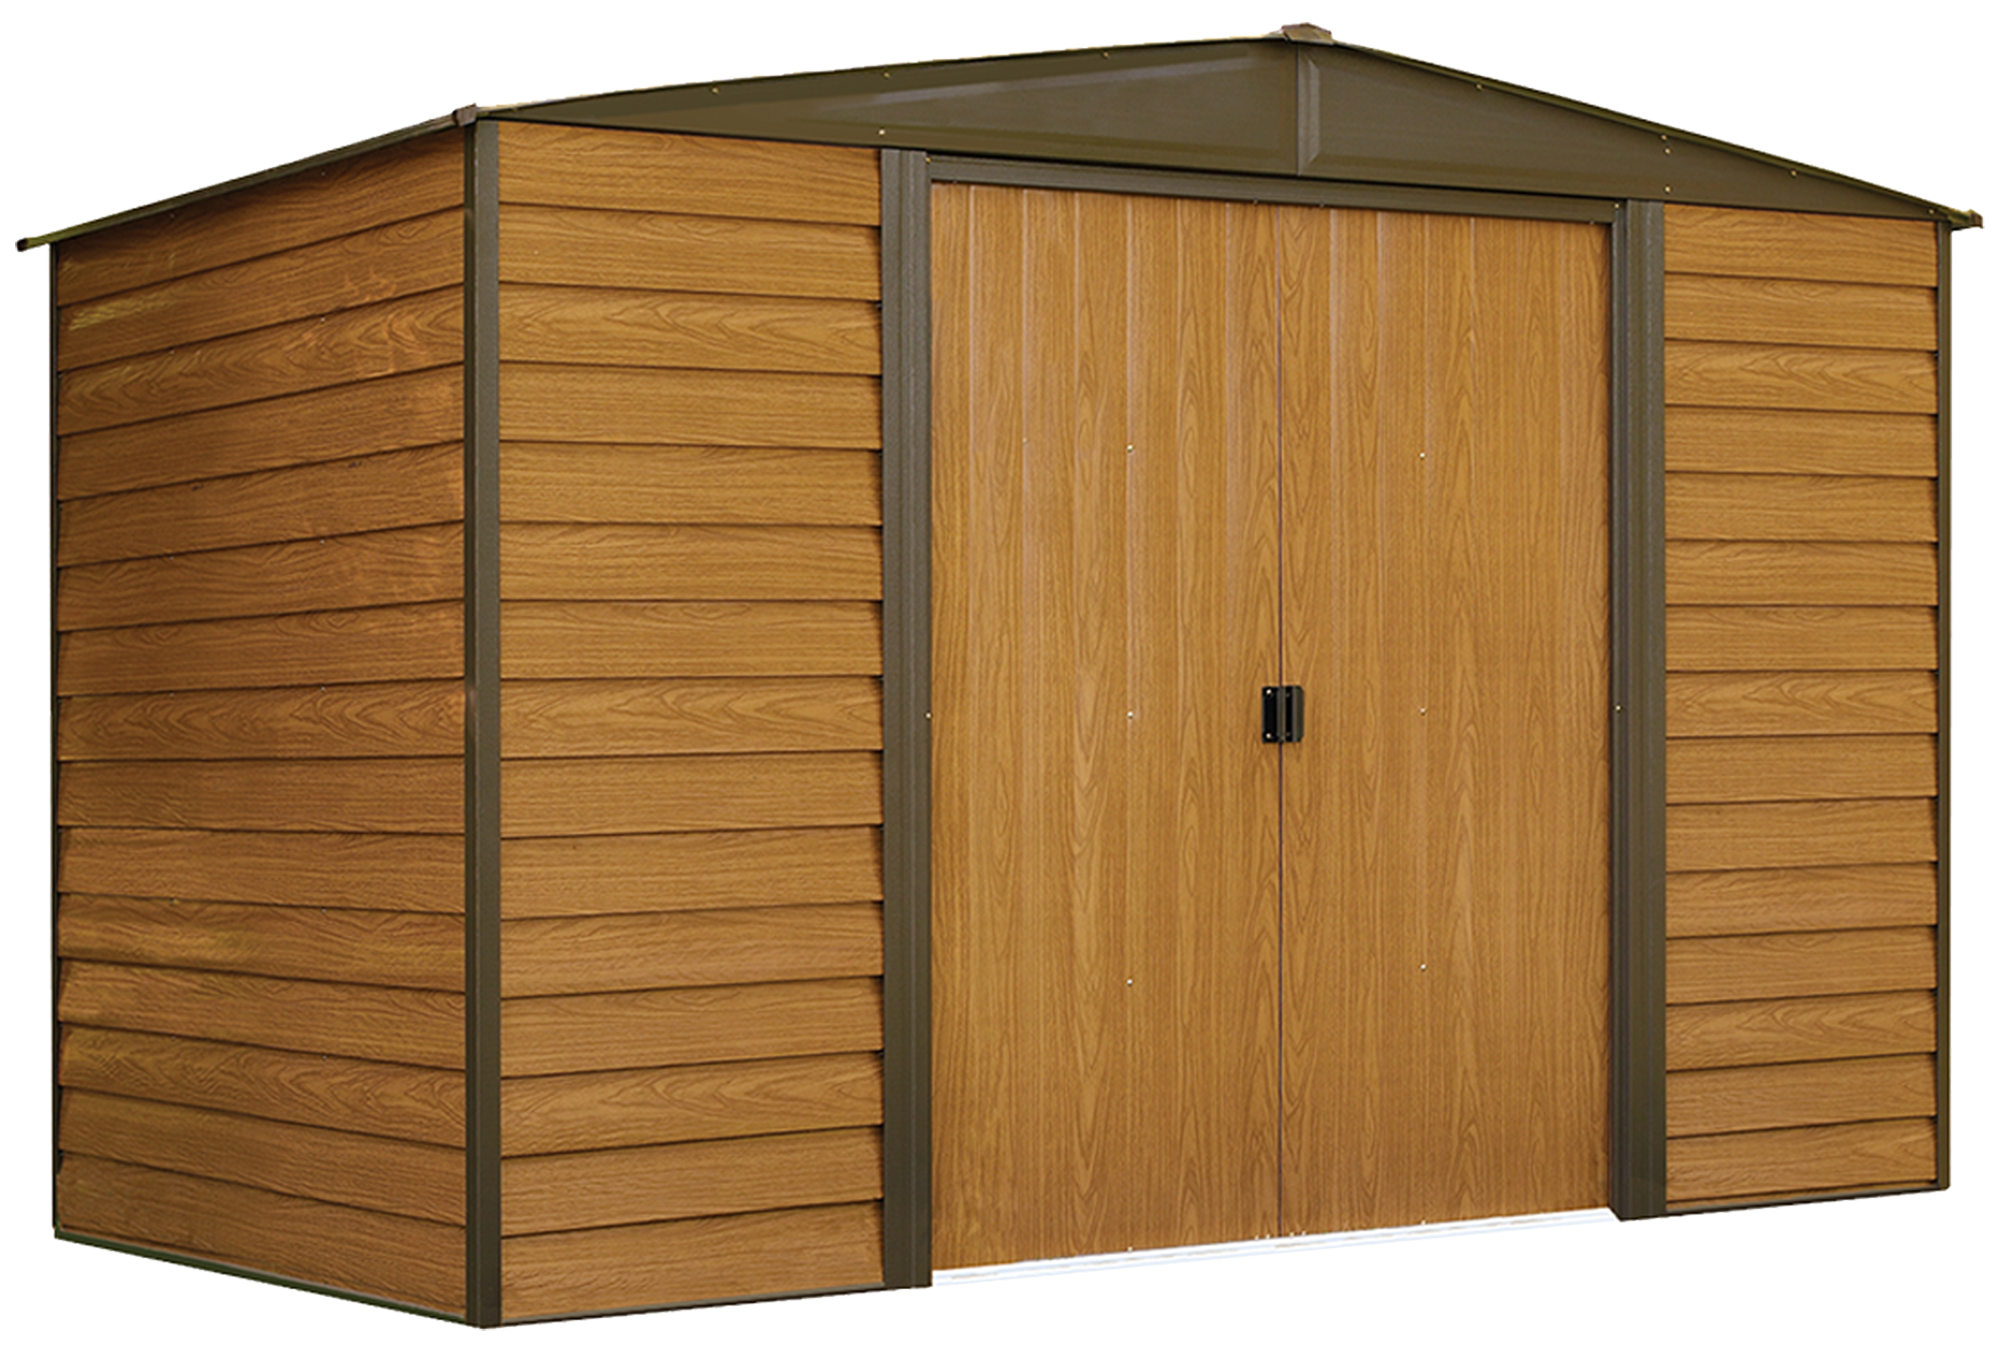 Arrow Woodridge Shed, 10 x 6 ft, Steel Shed with Wood Finish for Outdoor Storage